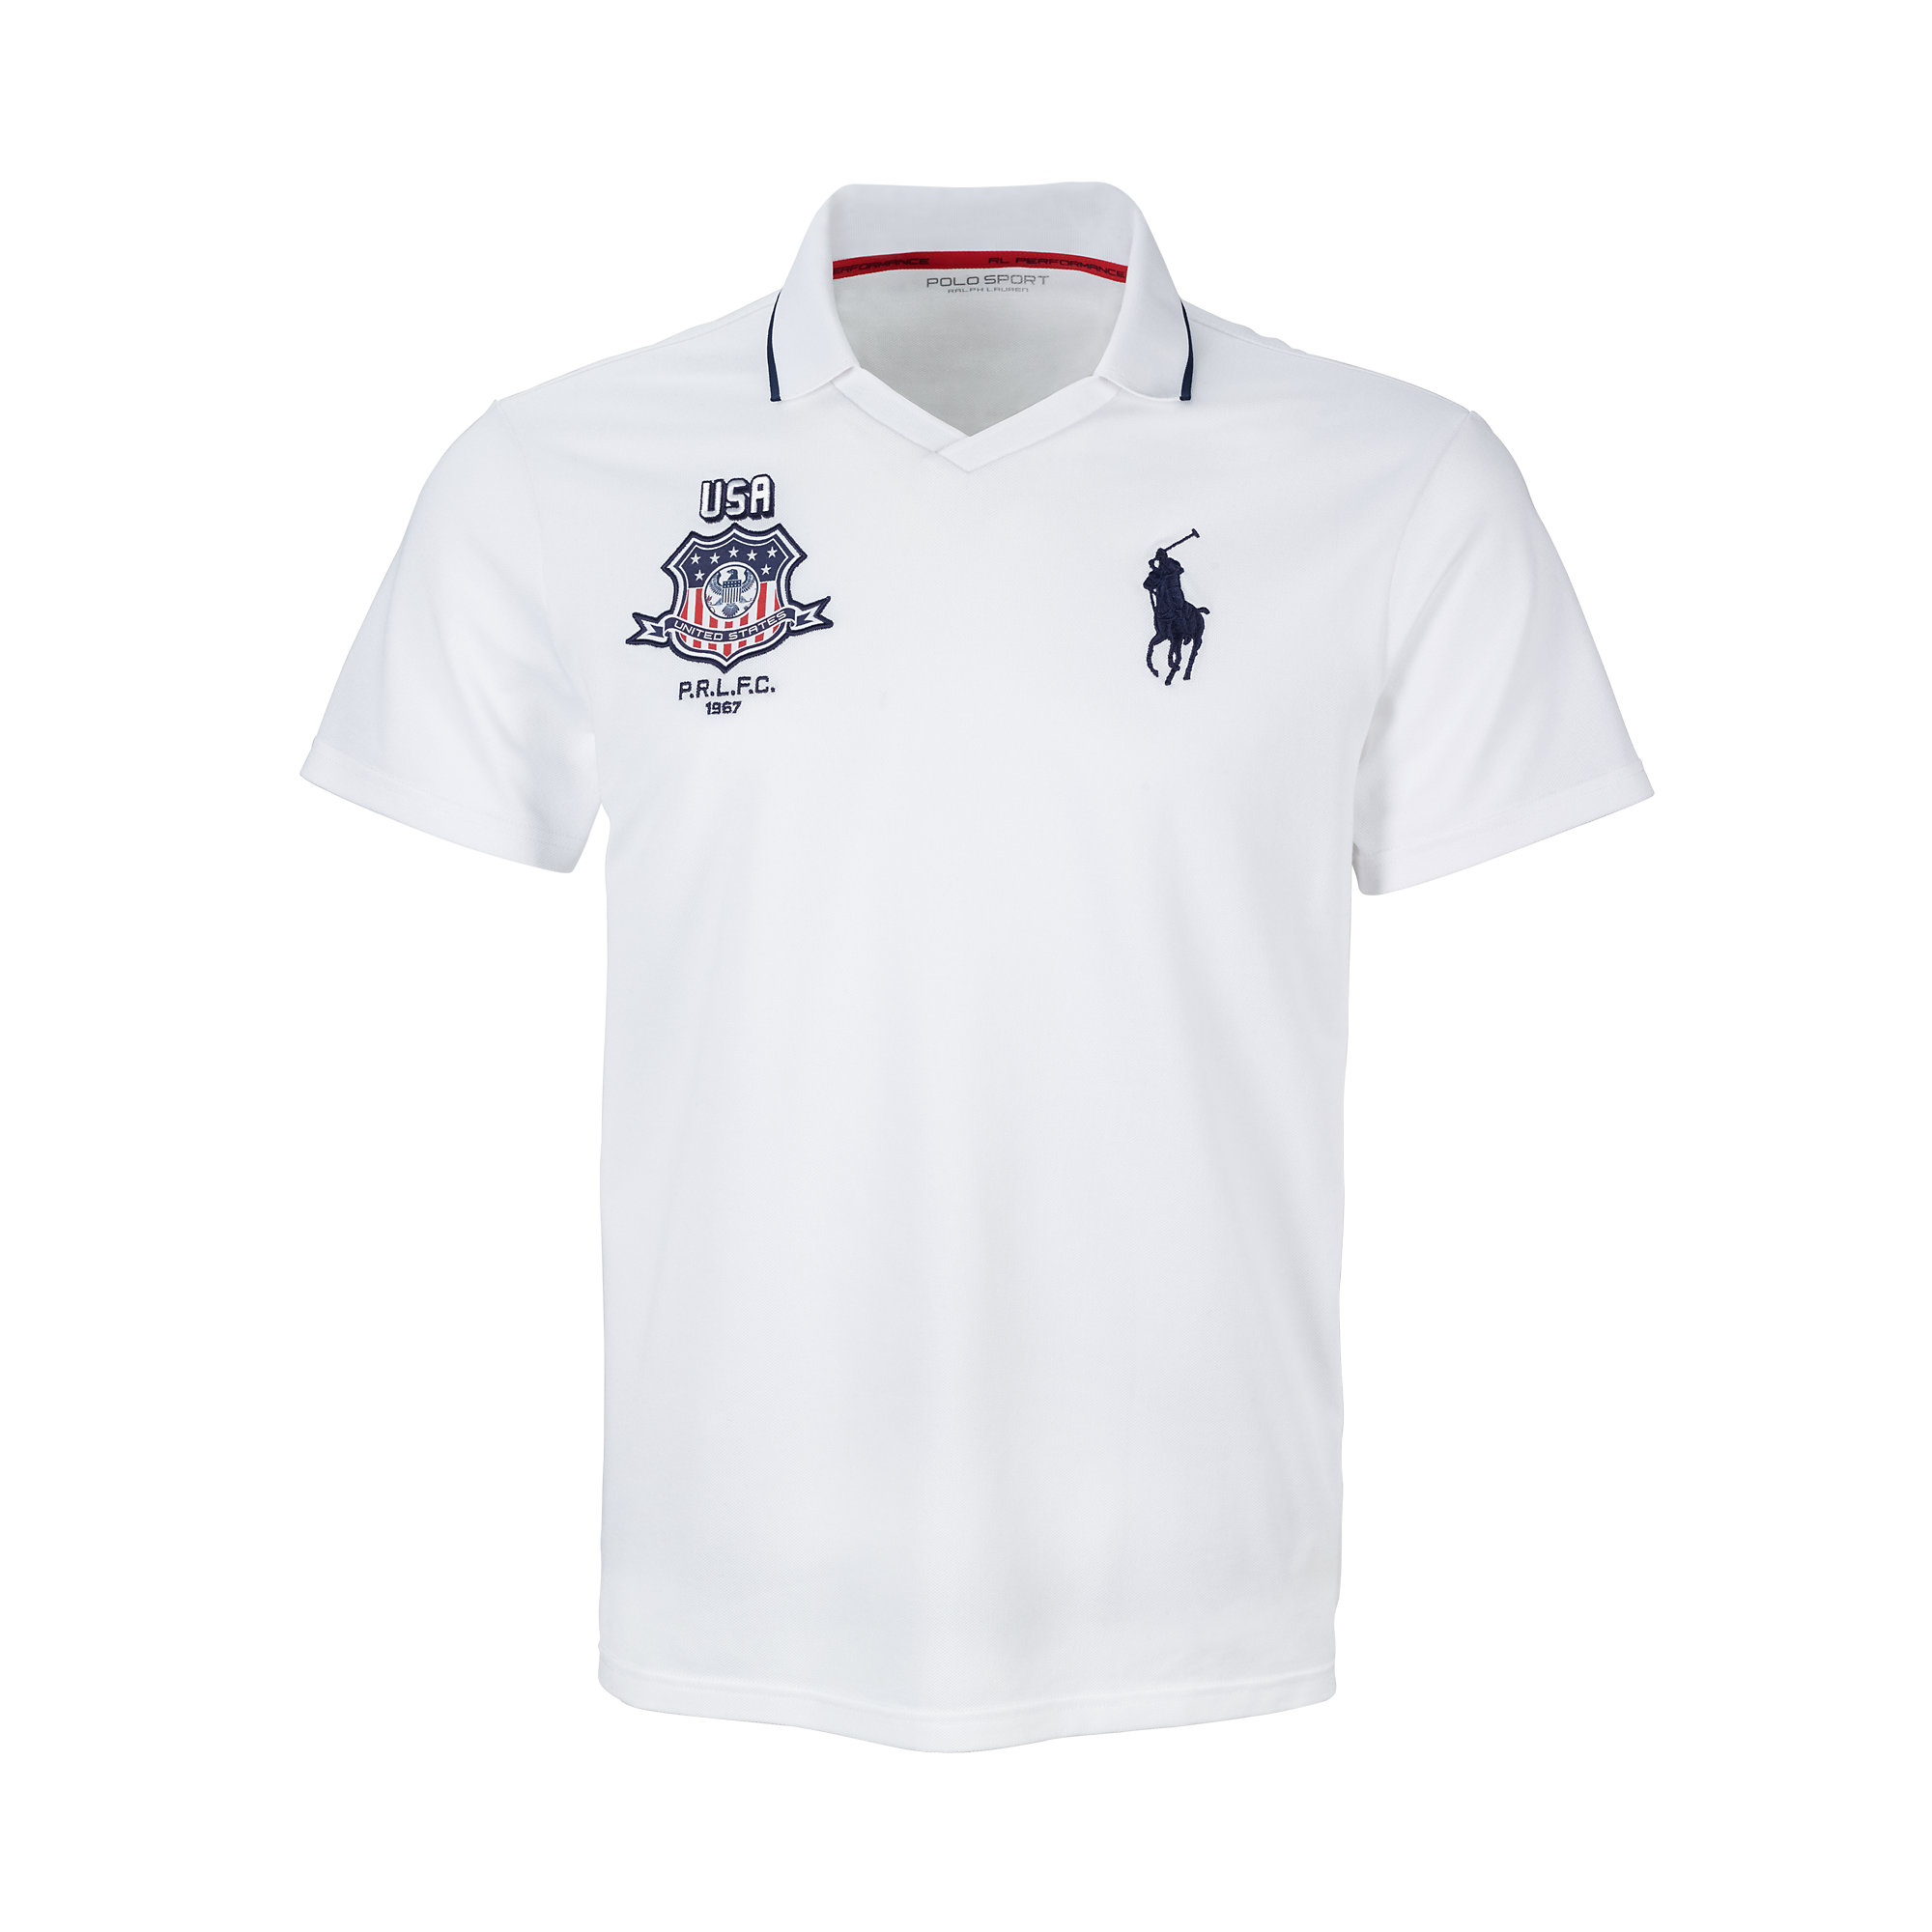 Polo ralph lauren men short shirts 06 male models picture for Man in polo shirt